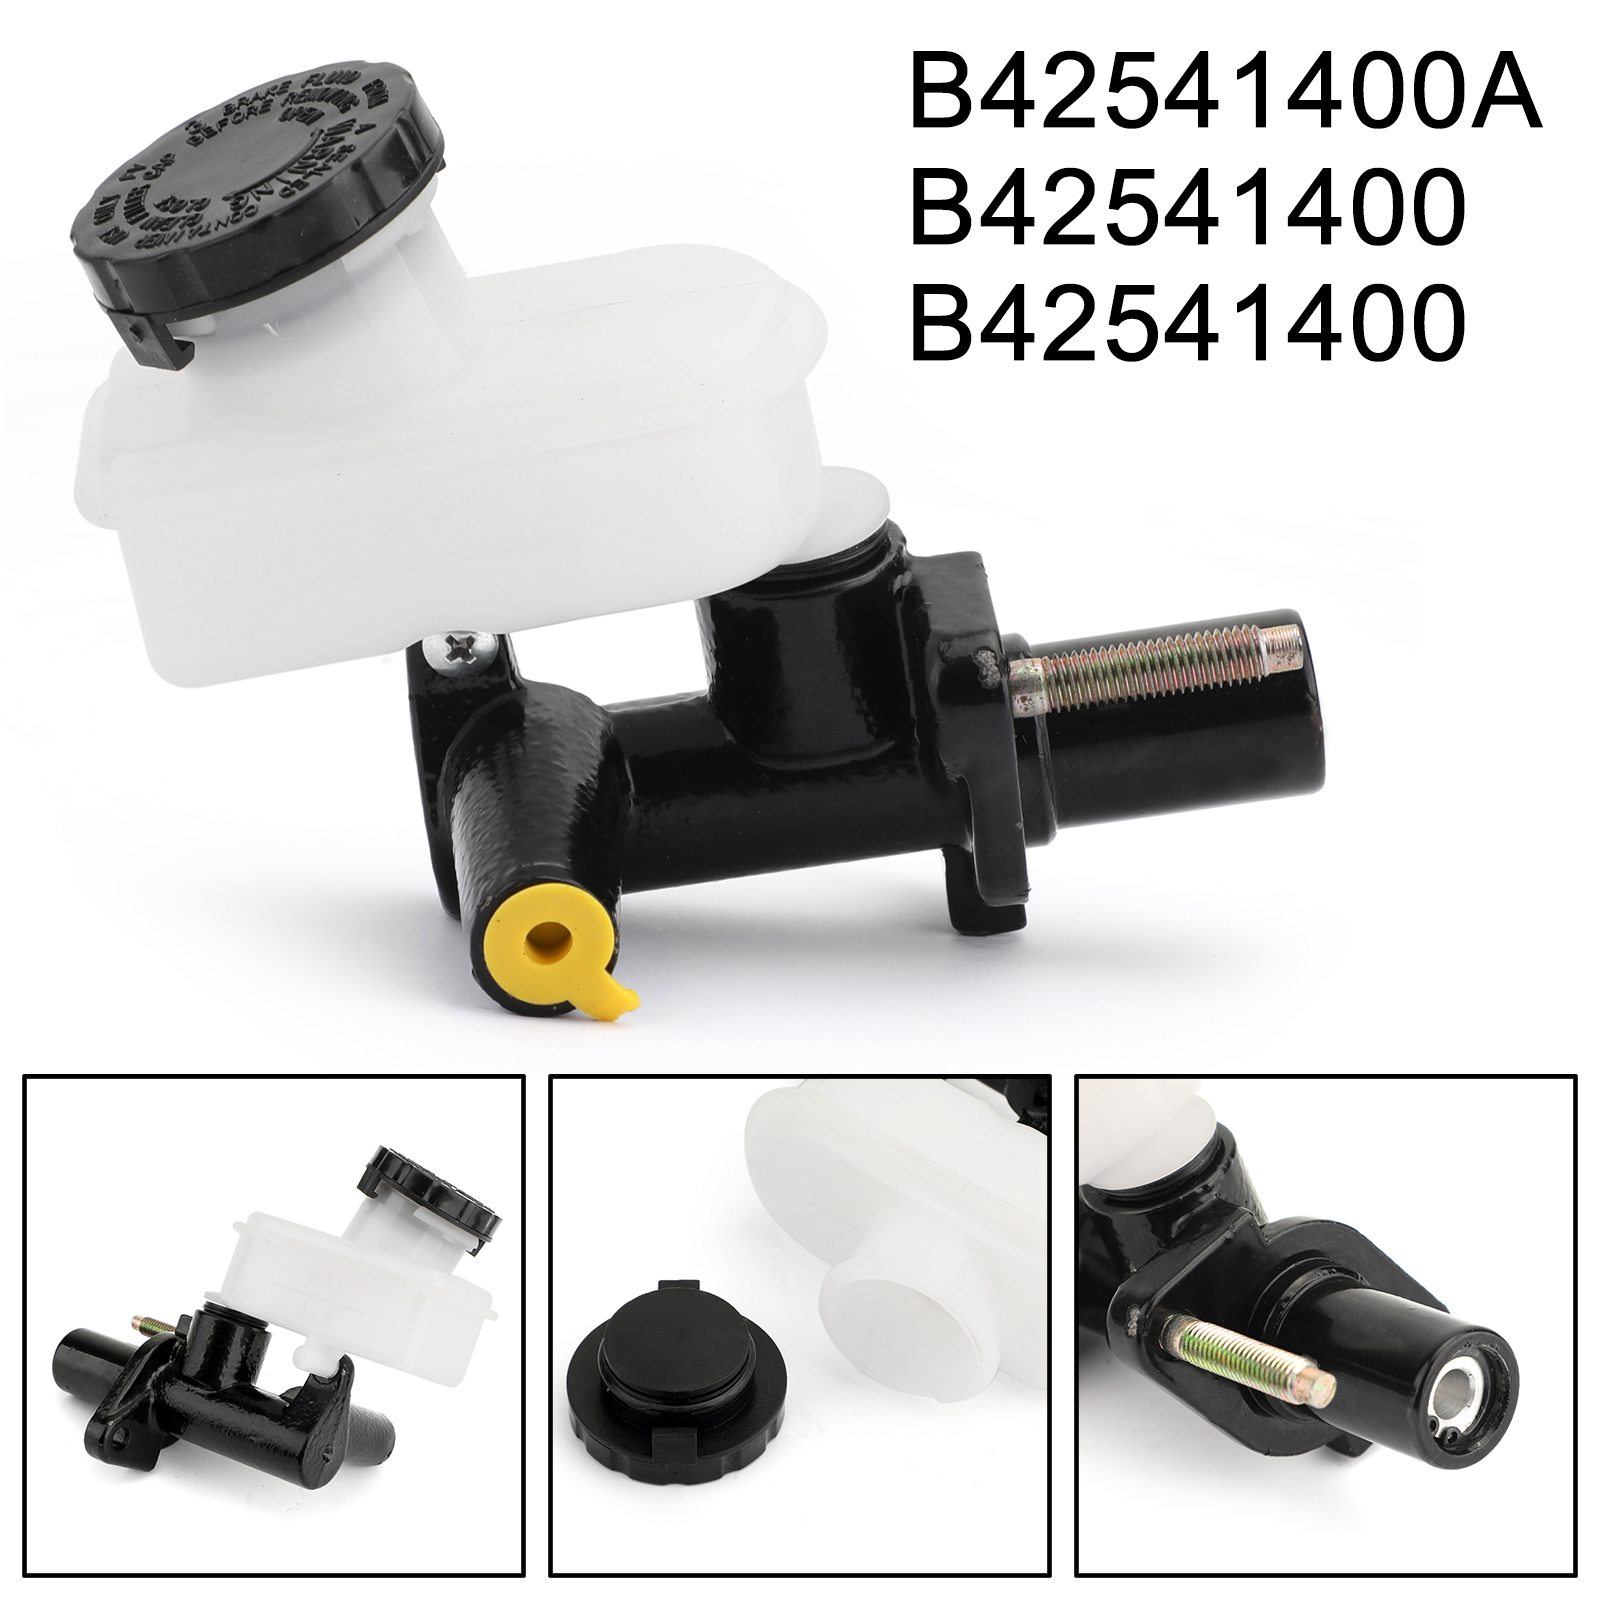 Areyourshop Brand New Clutch Master Cylinder for <font><b>MAZDA</b></font> <font><b>MX</b></font>-<font><b>5</b></font> <font><b>NA</b></font> NB 1989-2002 For FORD METEOR 1985-1987 B42541400A B42541400 Car image